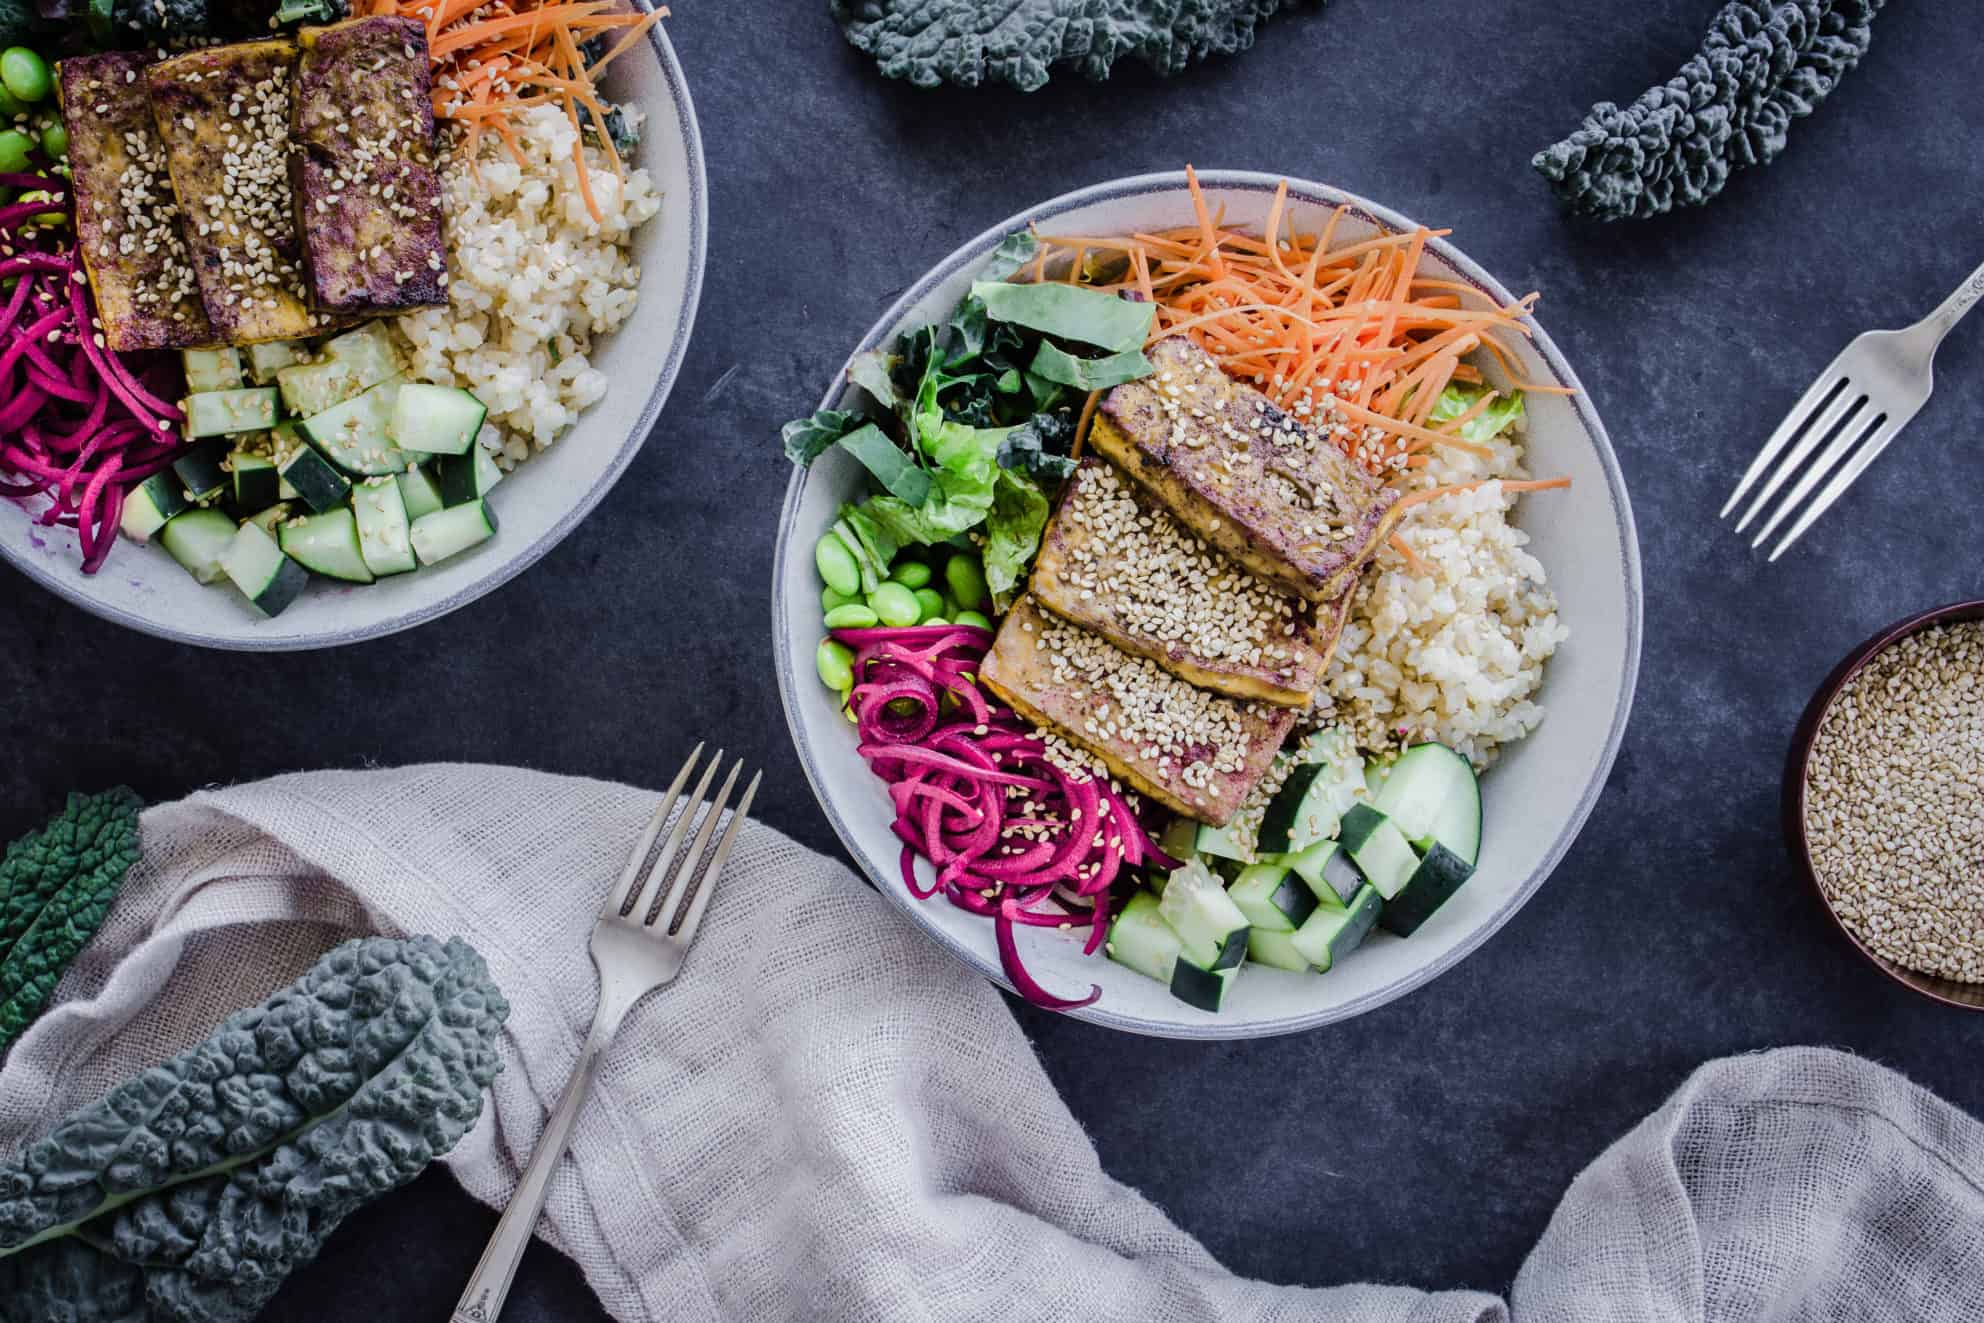 Two colourful vegan buddha bowls containing rice, vegetables and tofu, surrounded by forks, napkins, sesame seeds and kale leaves.